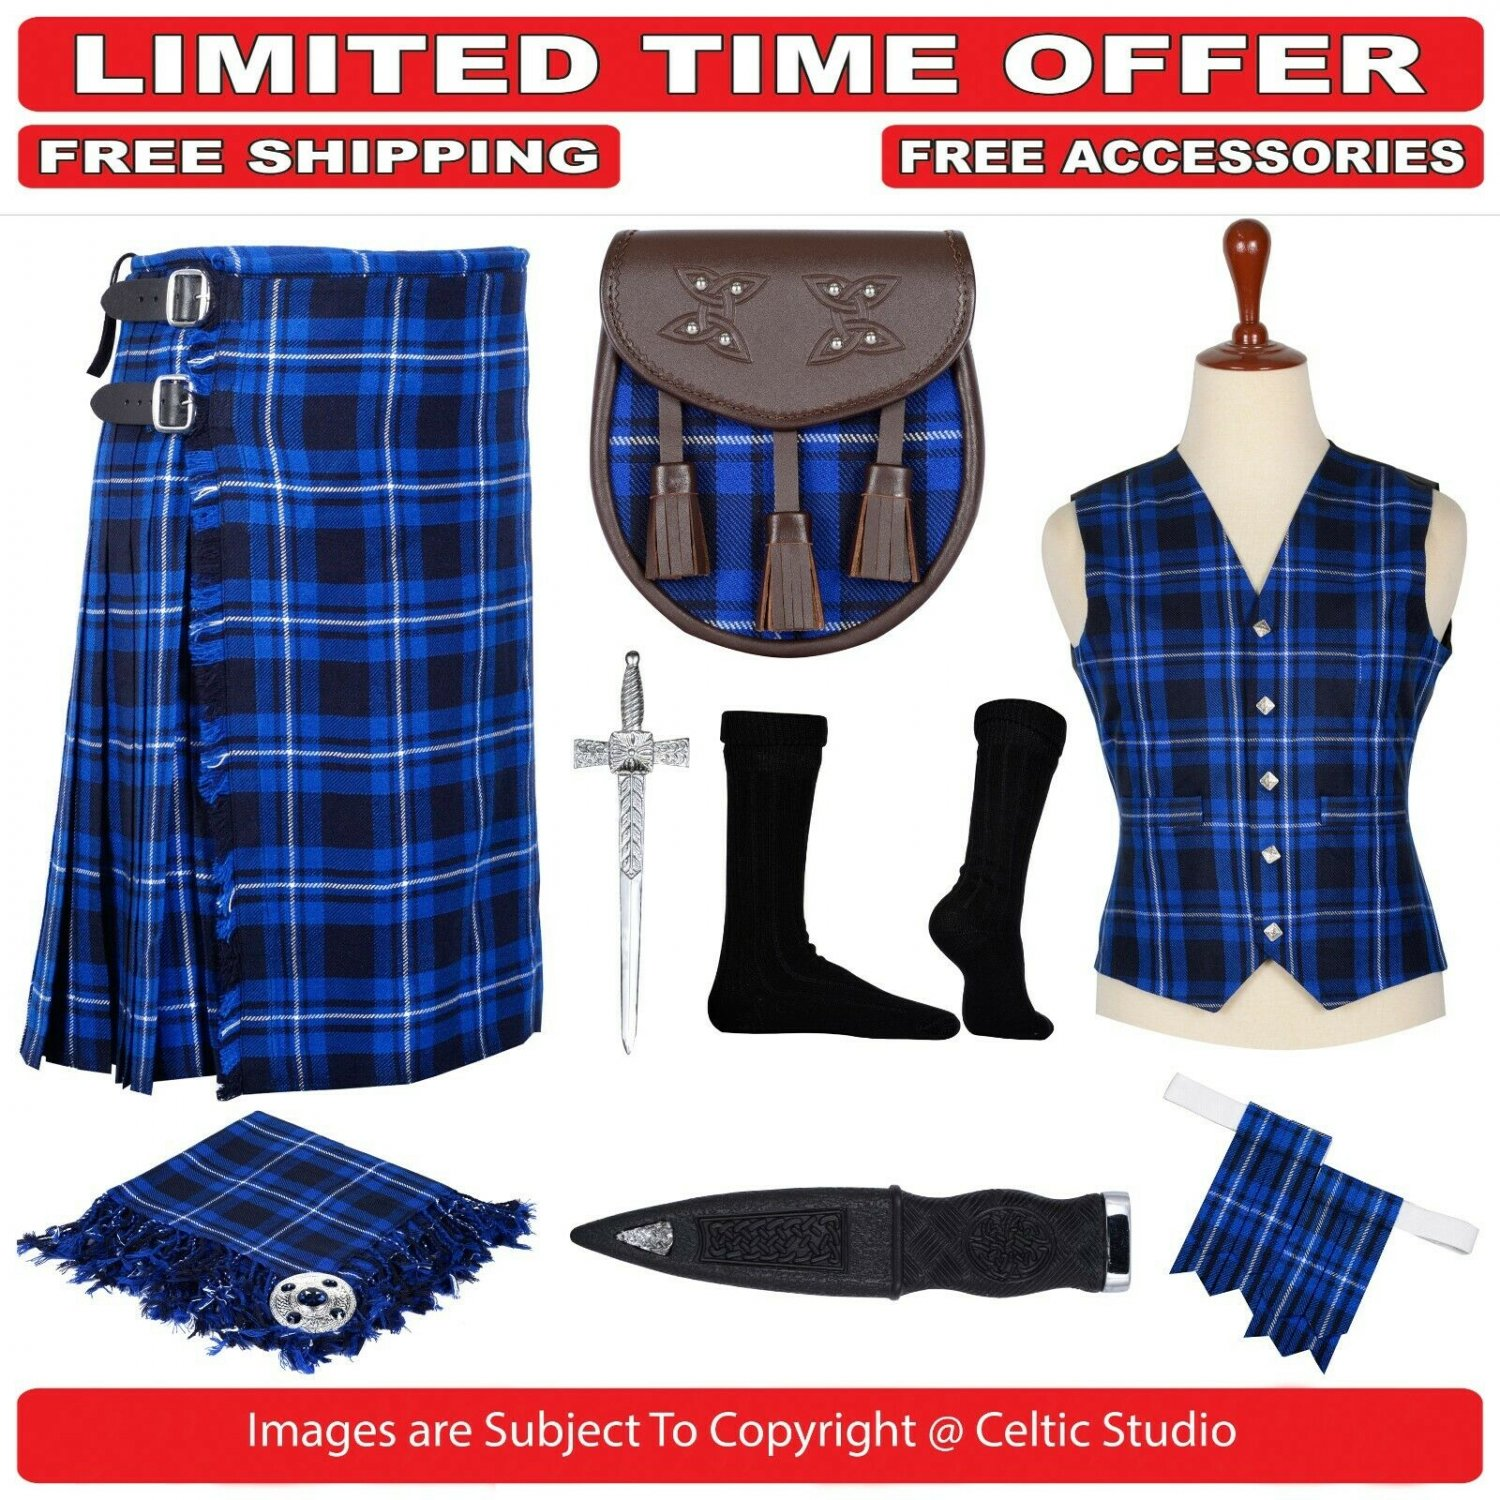 56 size Ramsey Blue Scottish Traditional Tartan Kilt With Free Shipping and 9 Accessories